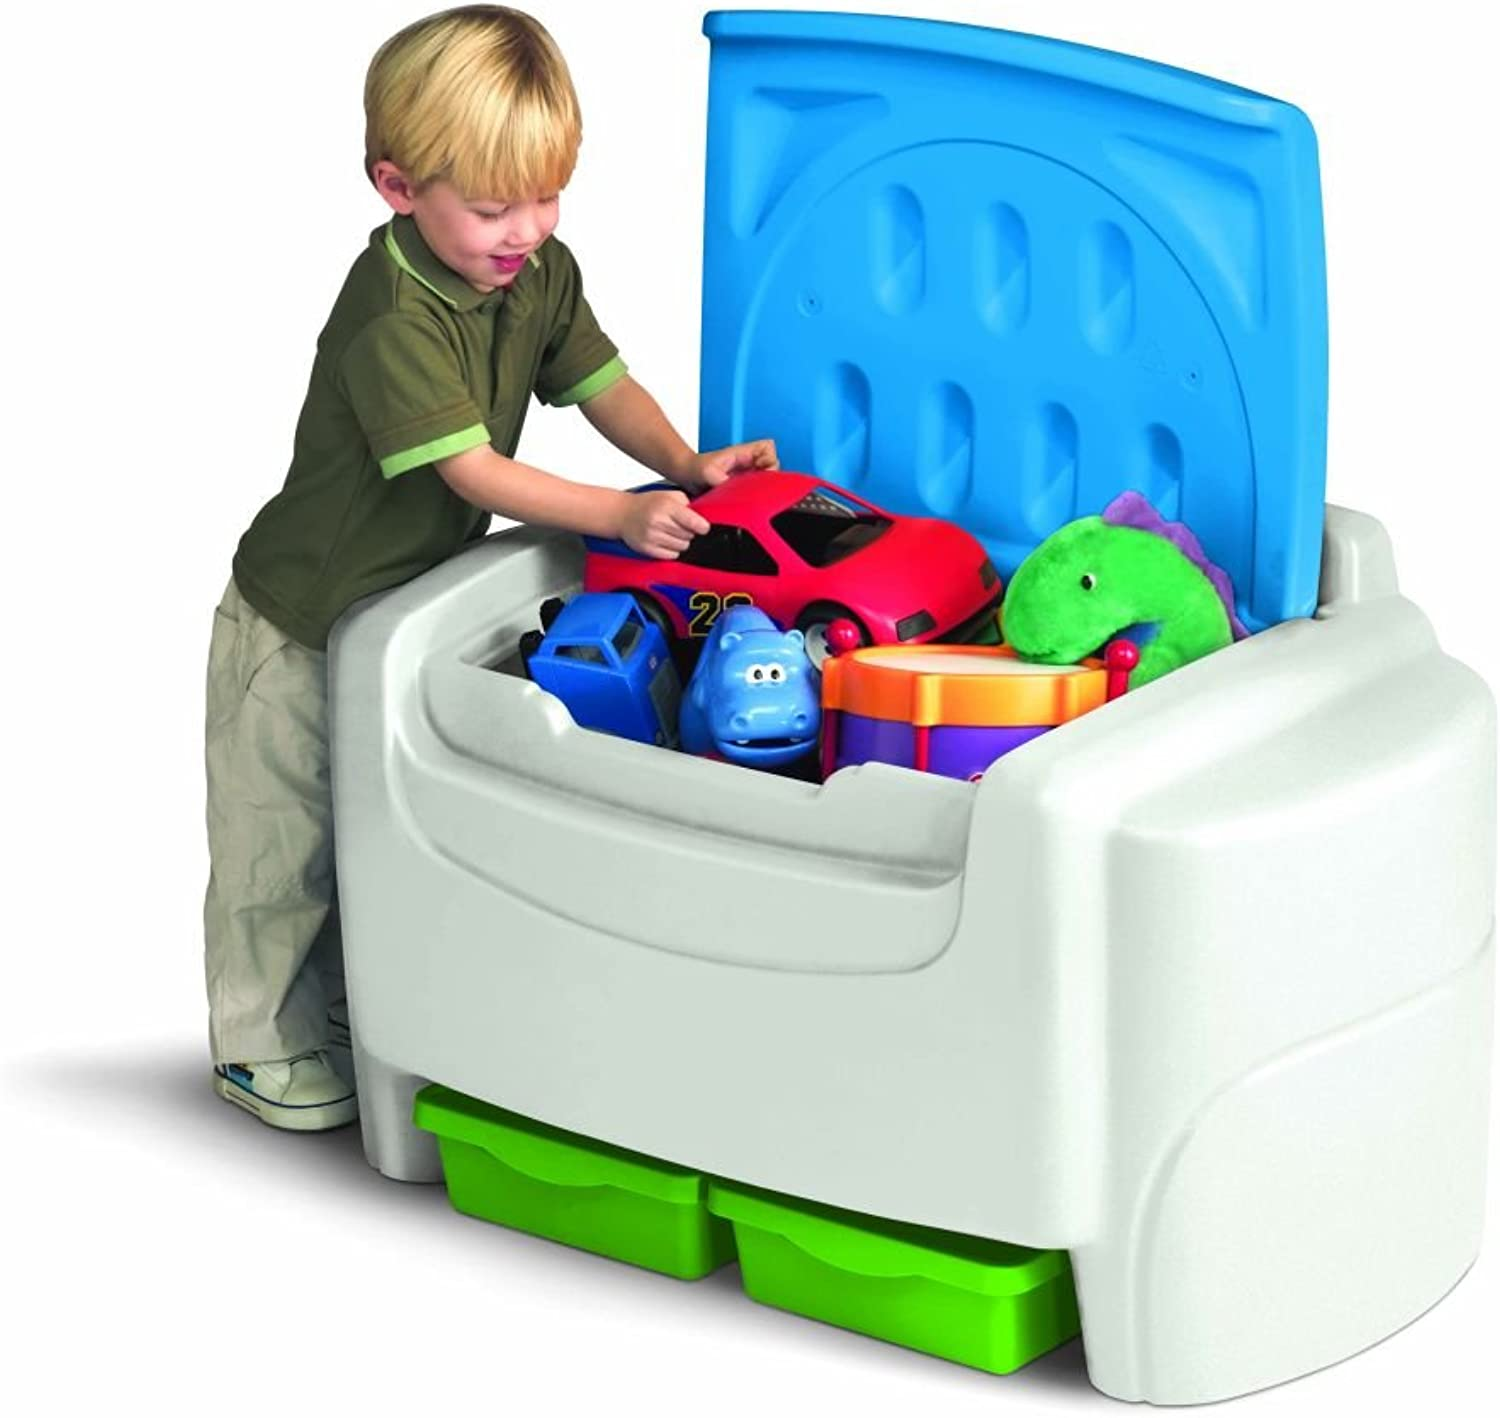 Little Tikes Bright 'n Bold Toy Chest - Green bluee